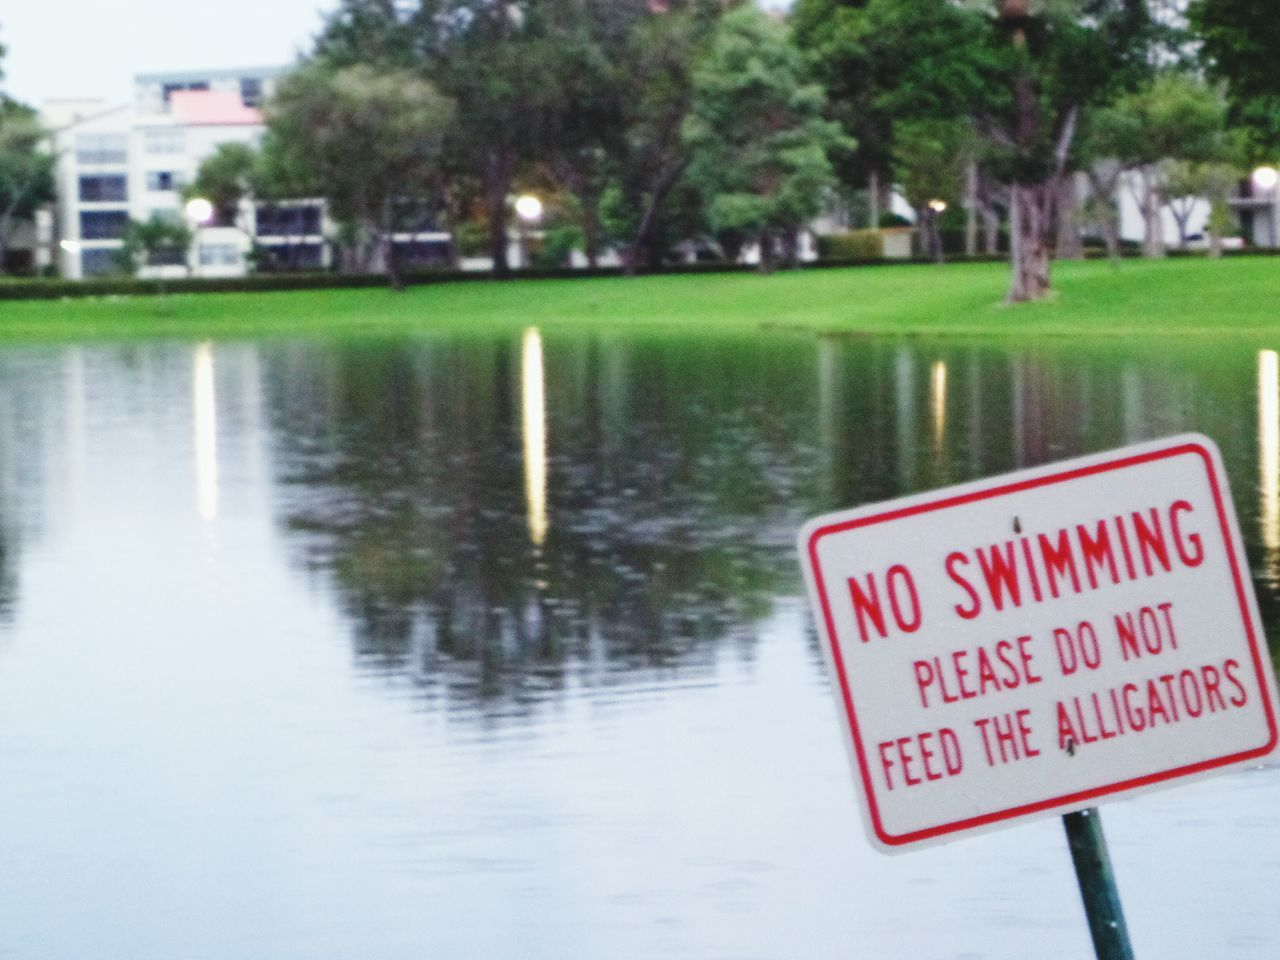 No swiming, do not feed the alligators sign in a neighborhood in south Florida. Text Communication Water Safety Information Sign Waterfront Signboard Outdoors Day Focus On Foreground Red USA Floida Travel Alligator Swimming Lake Funny Pompano Beach Danger Neighborhood Rain